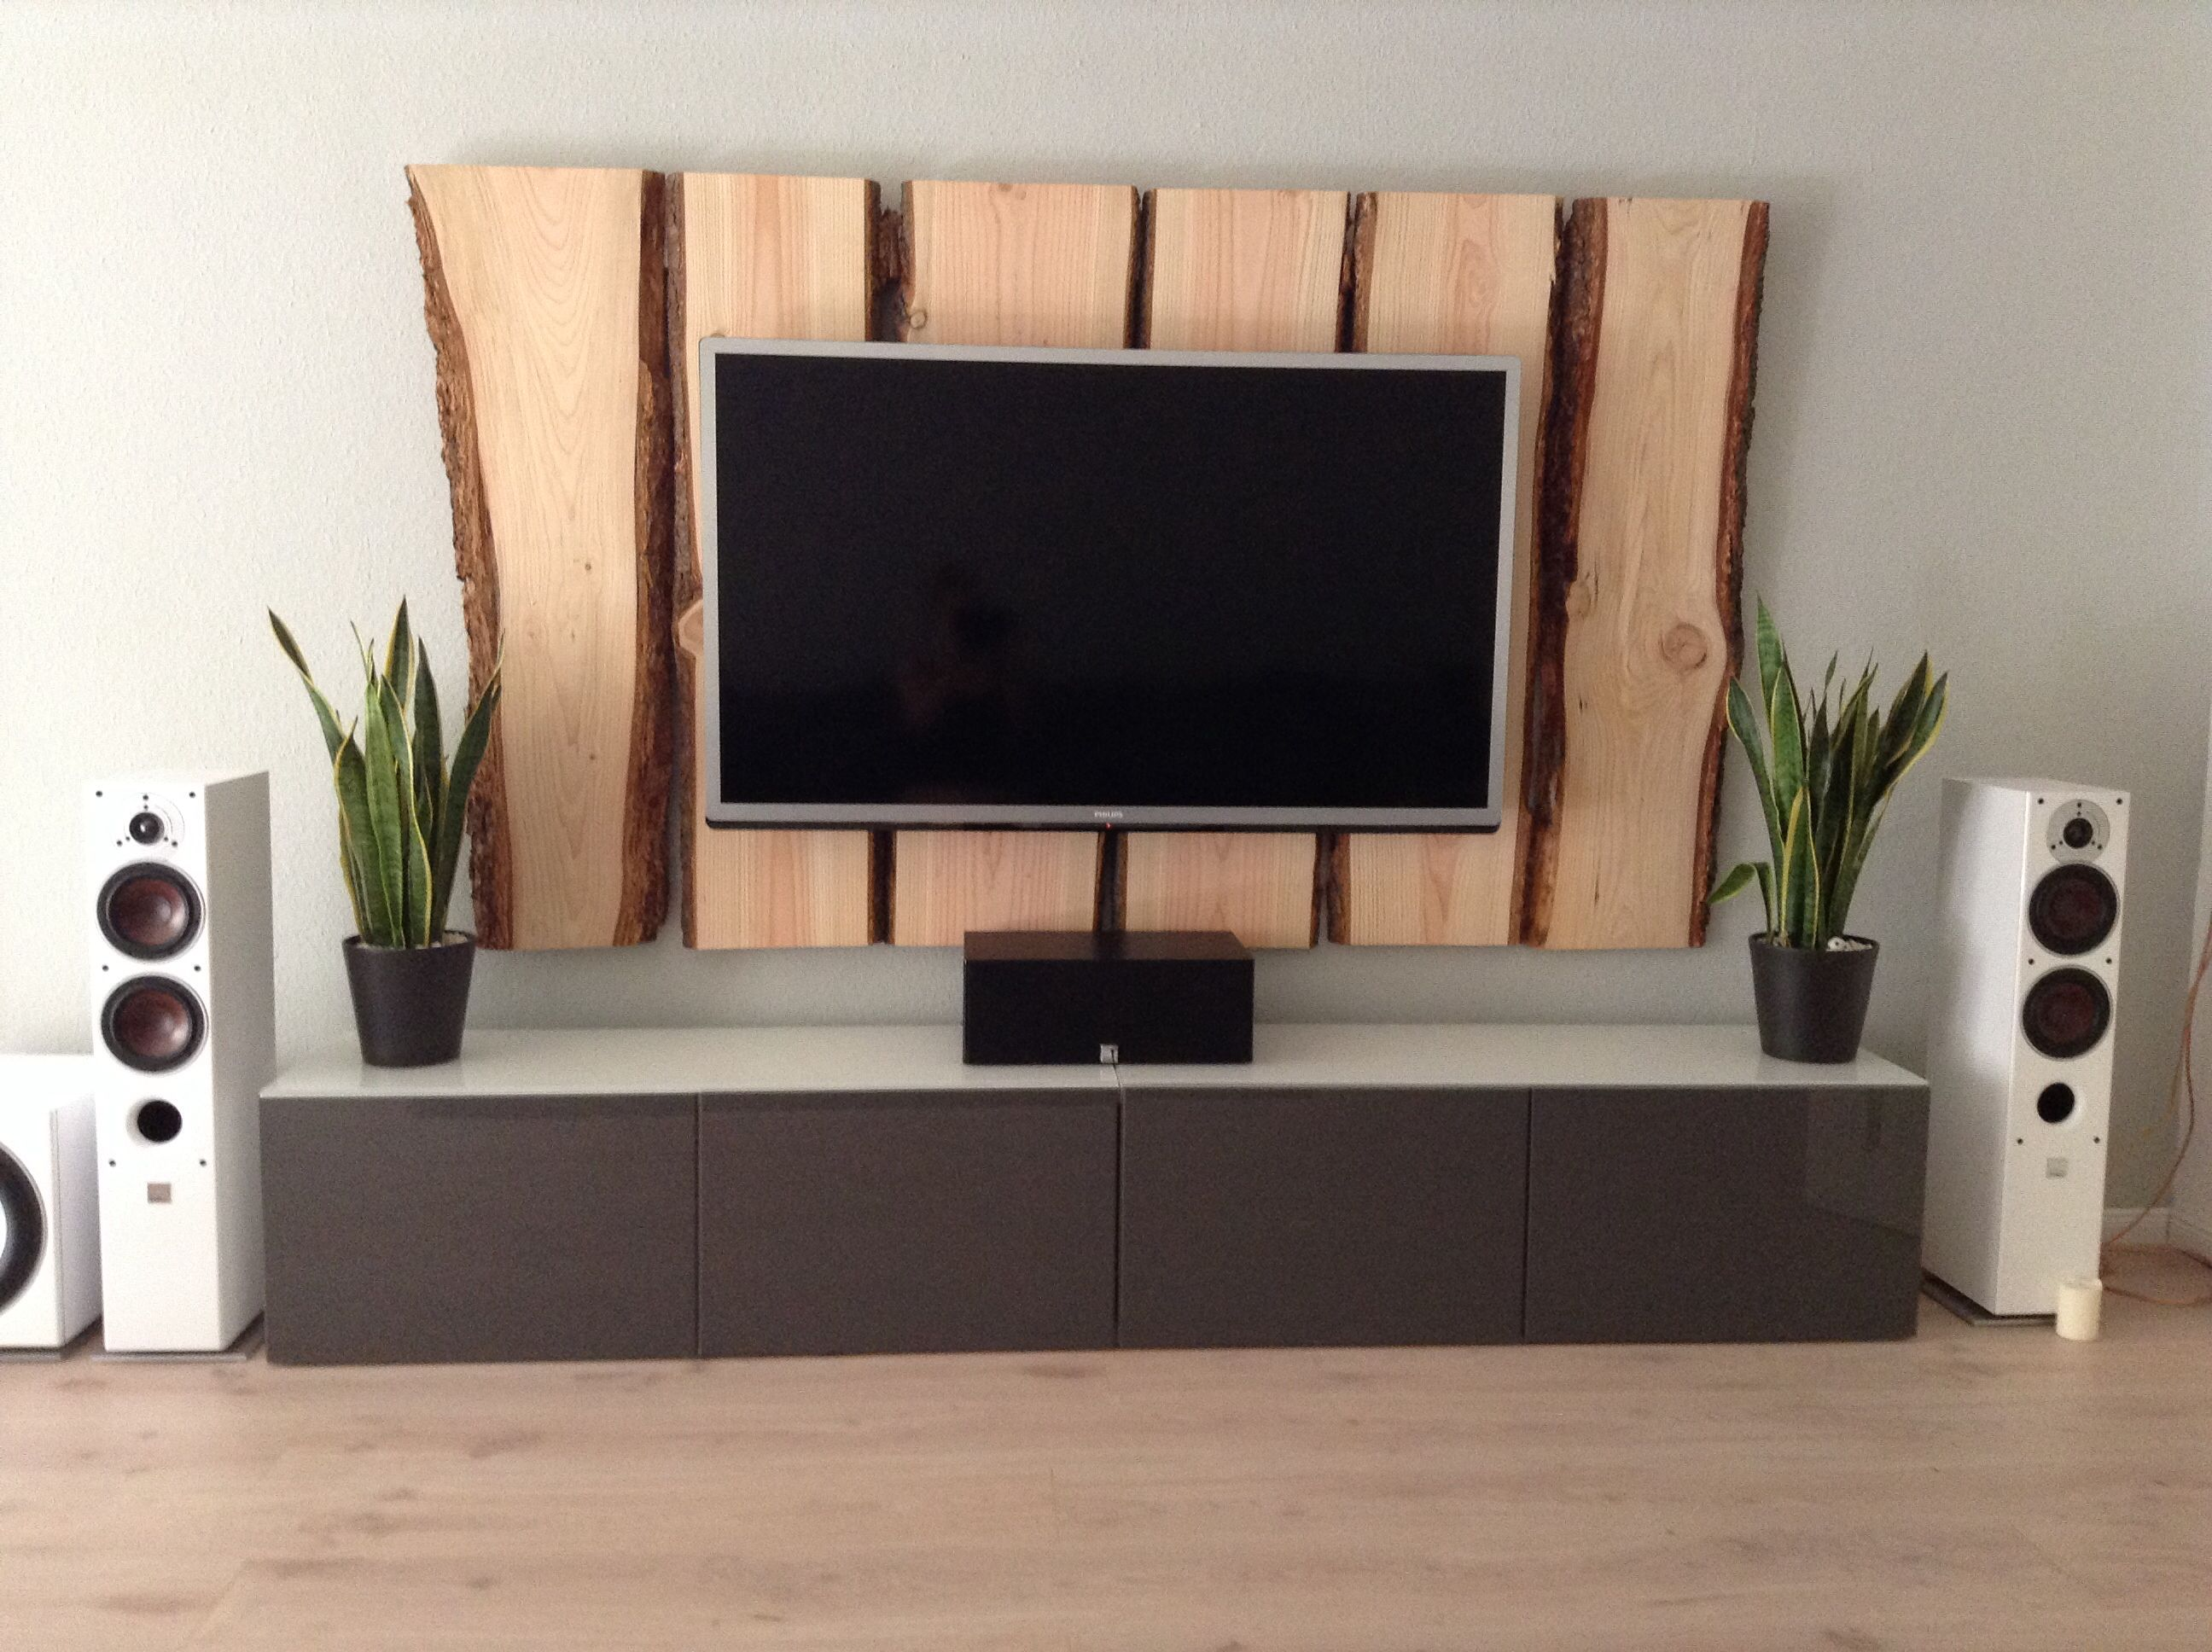 Holz Dekoration Wand Holz Tv Wand Tv Wall Wood Дизайн Интерьеры Оформления Living